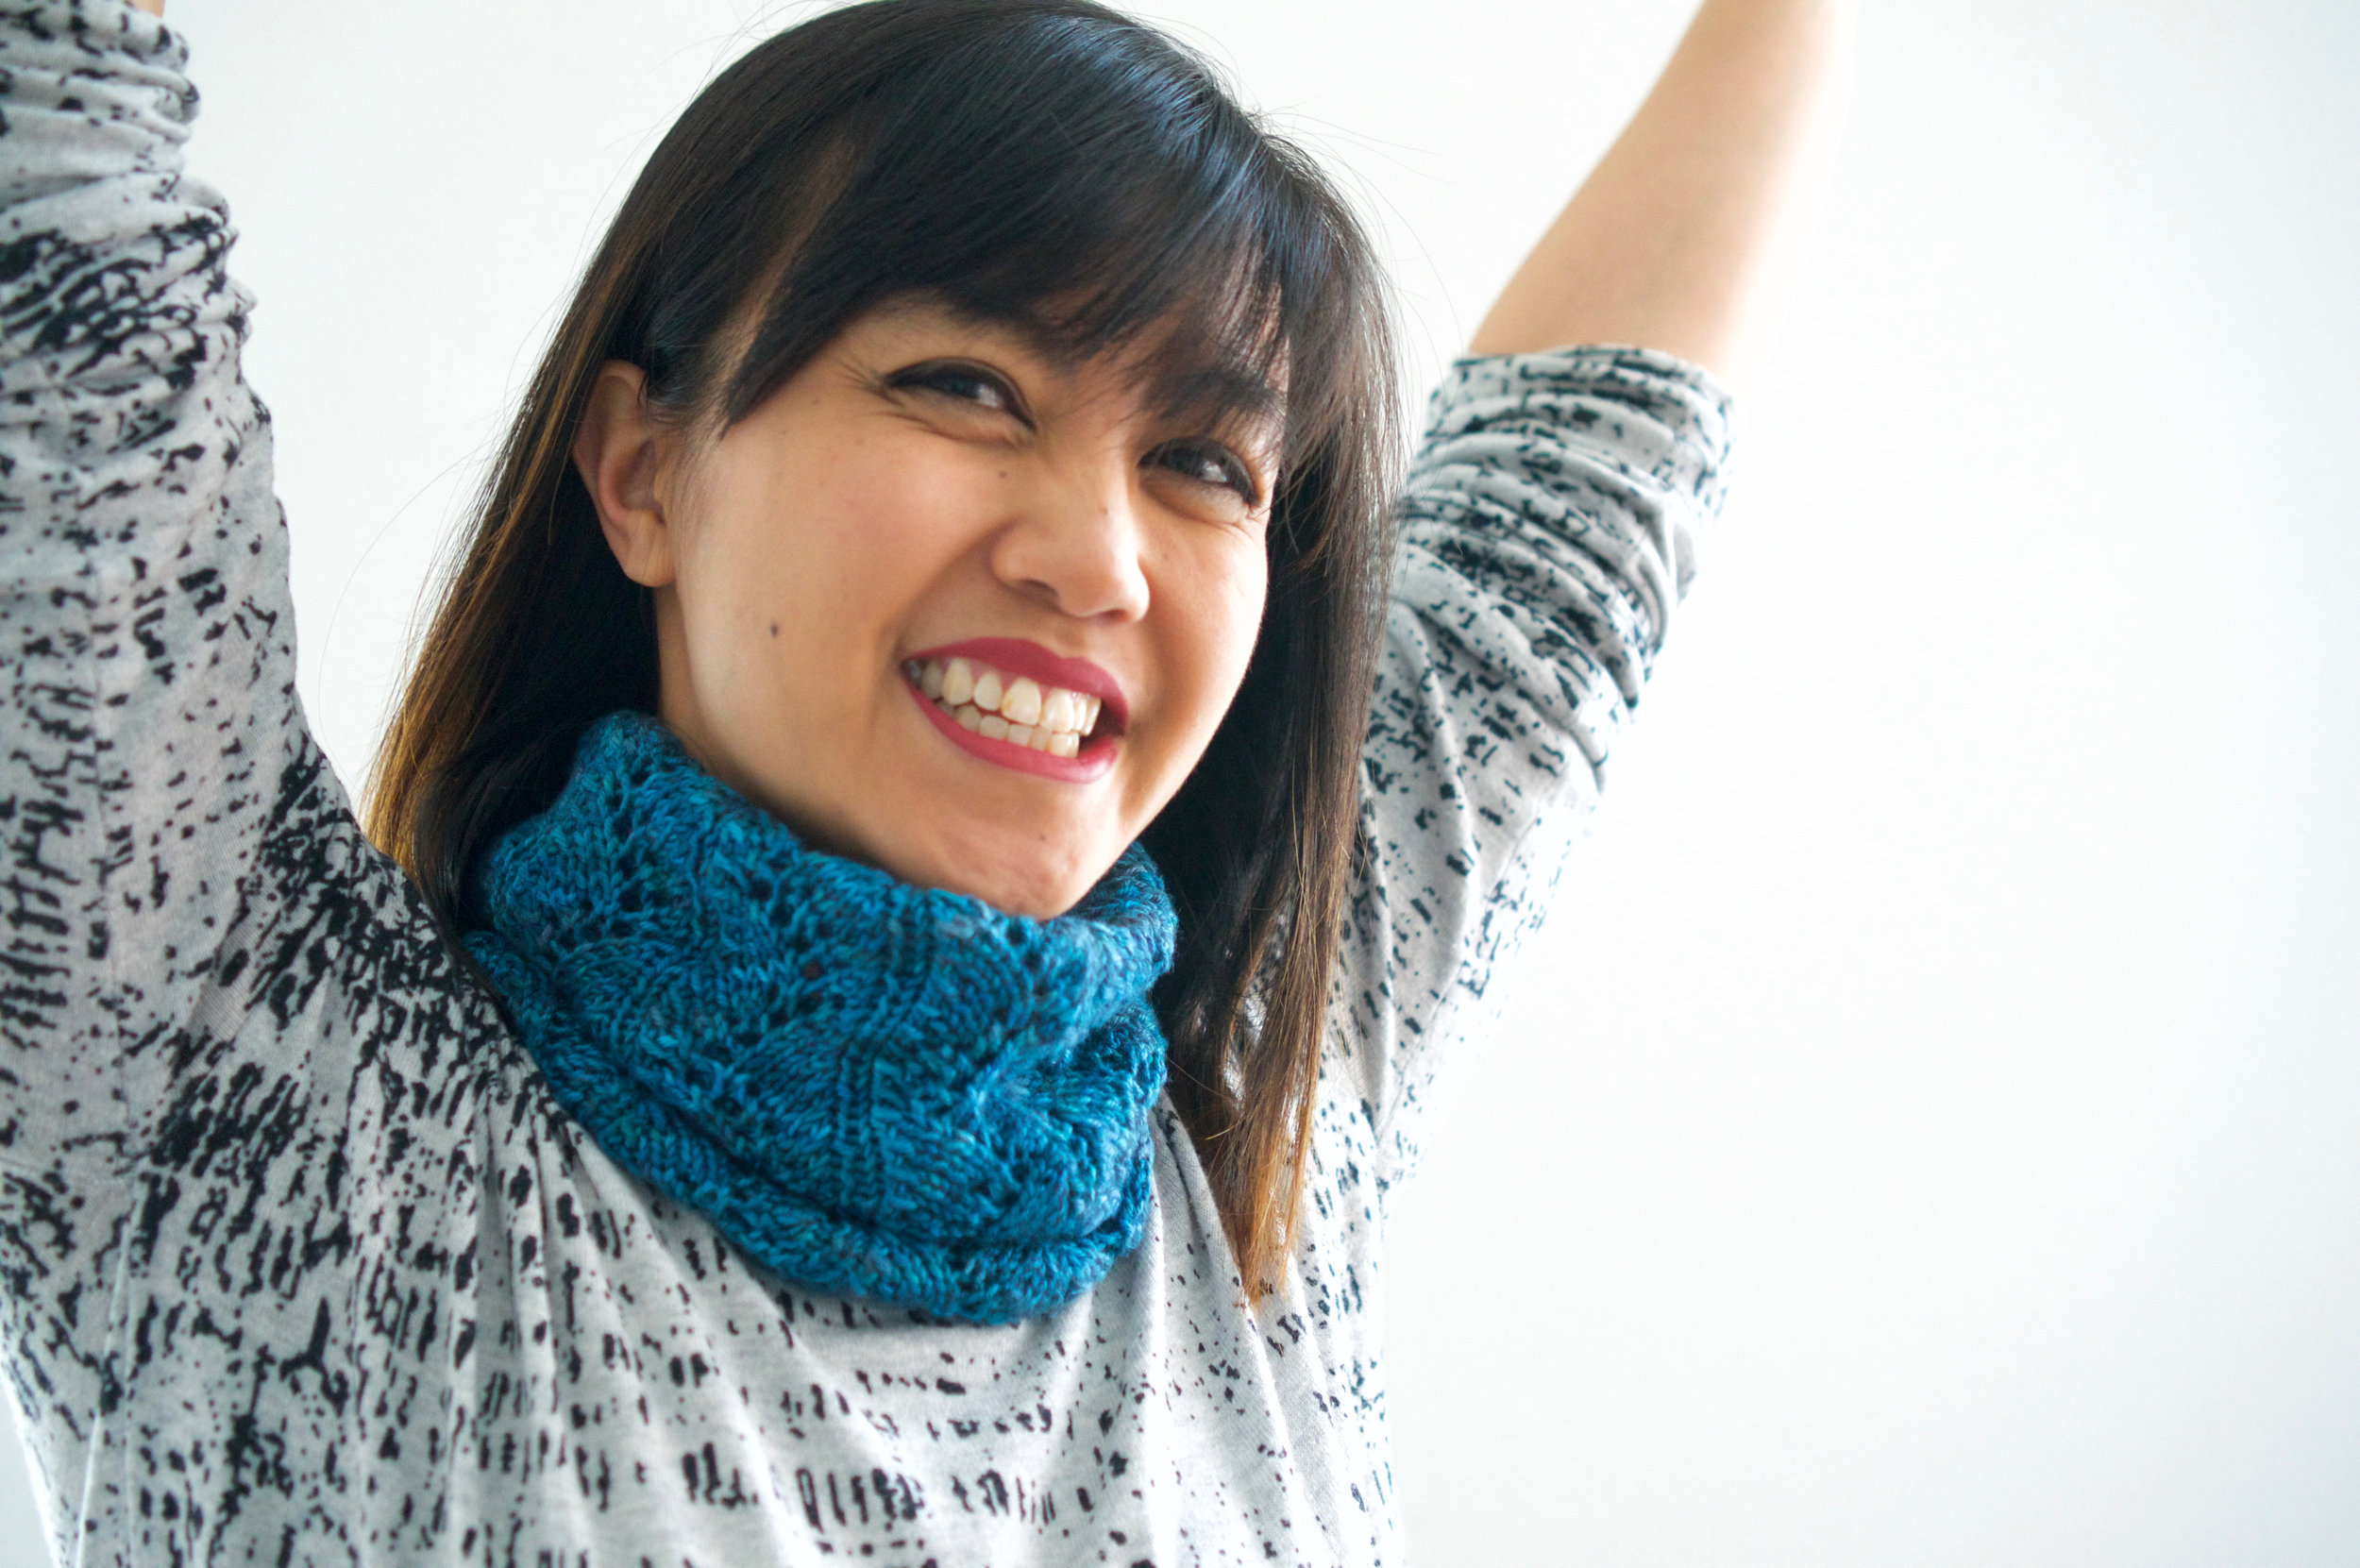 Up and Down the River Cowl - $4.99